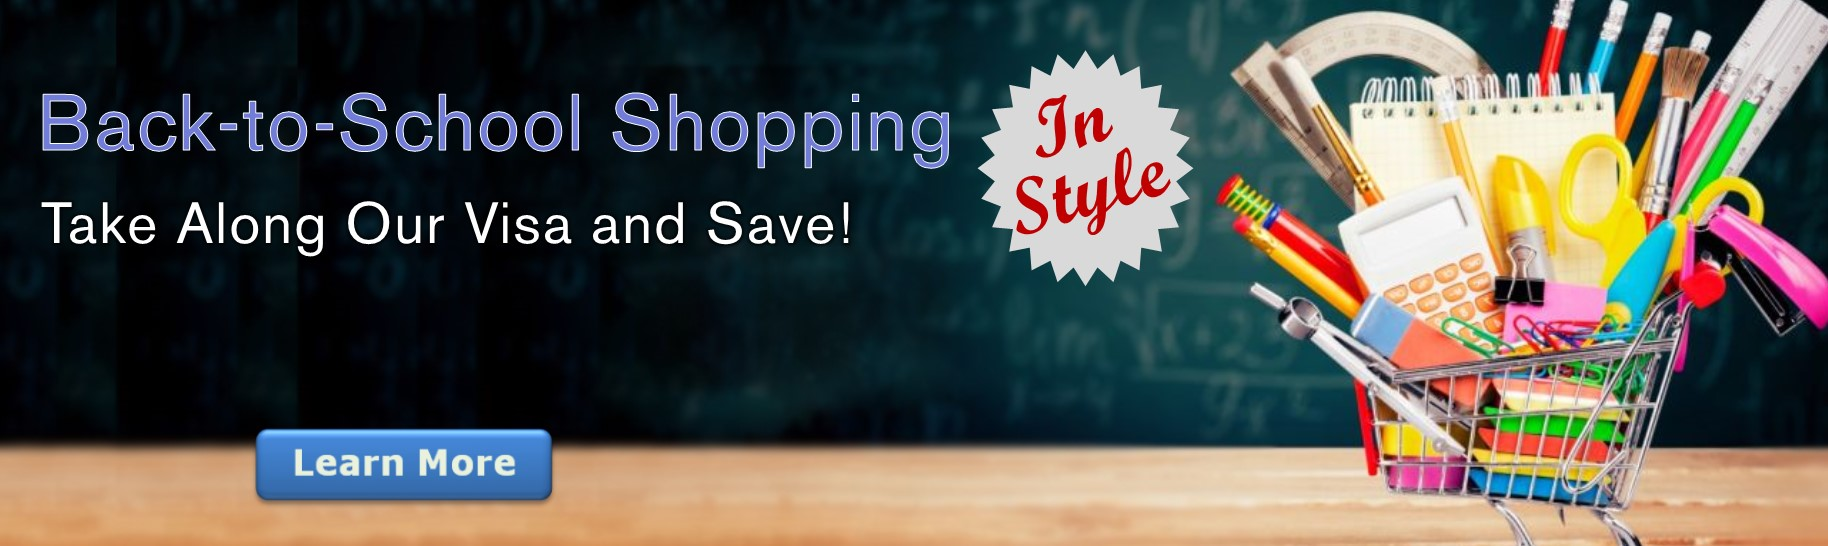 back-to-school-shopping-1170x350-website